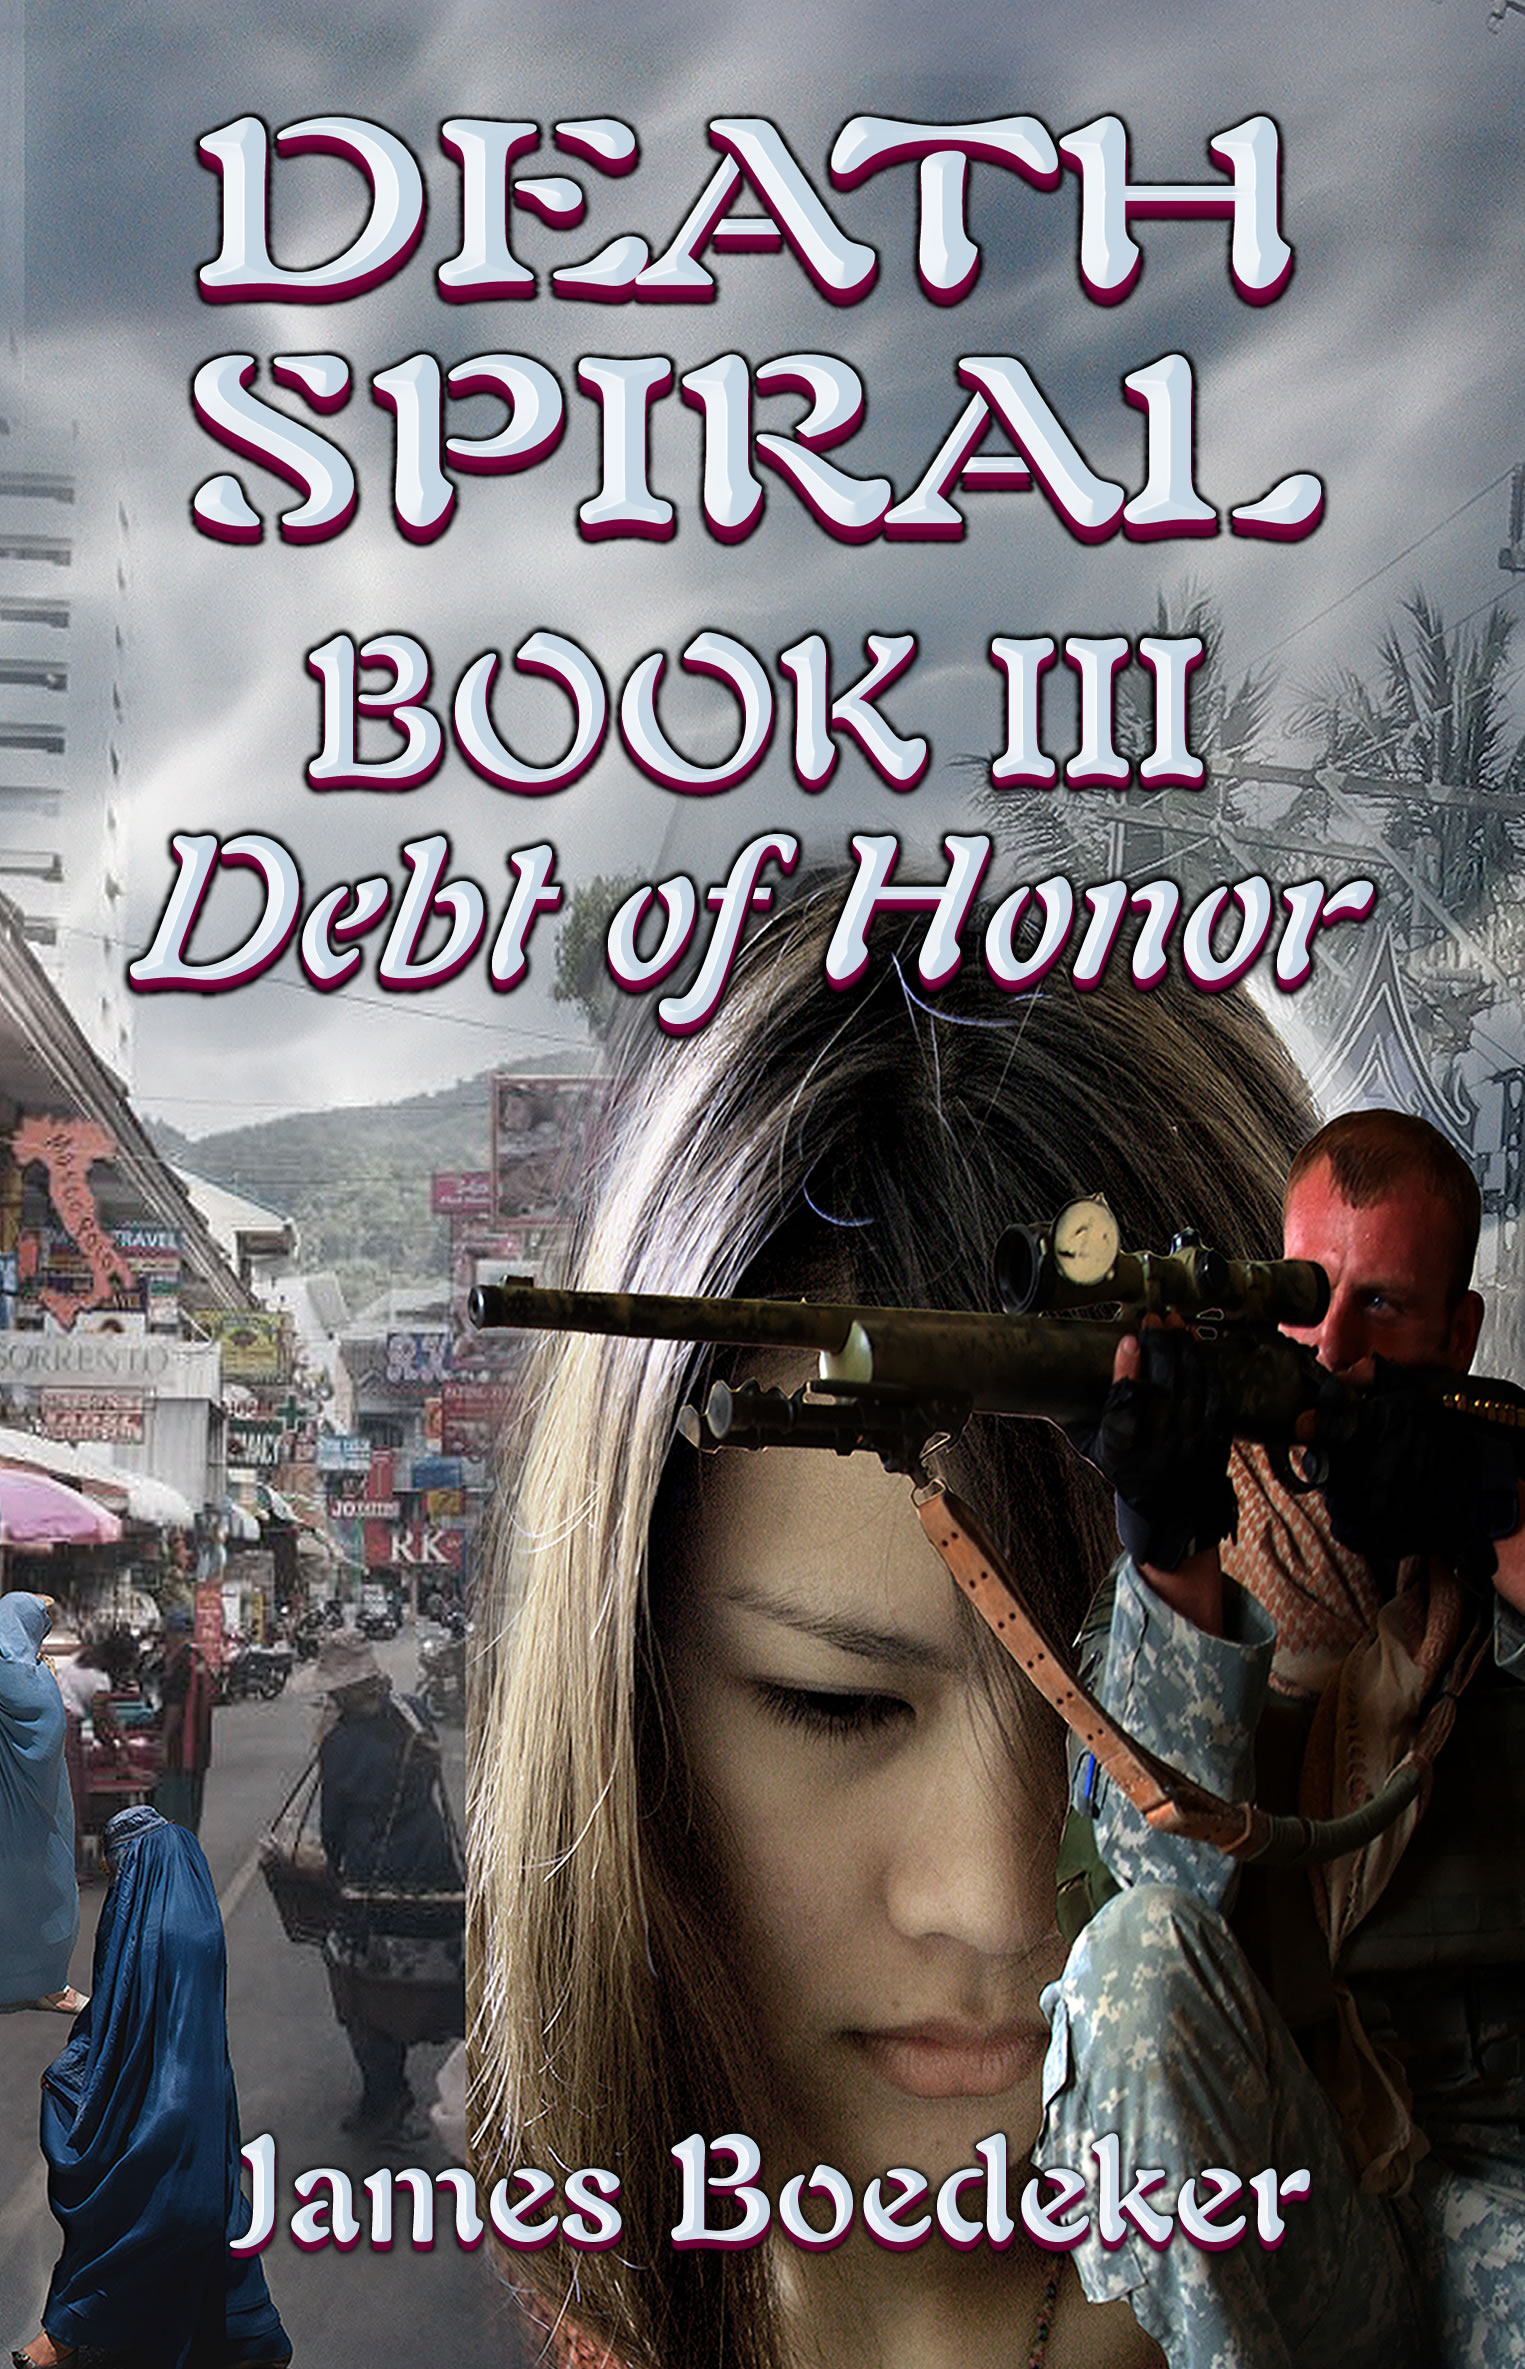 James Boedeker fiction set in Thailand - Death Spiral.